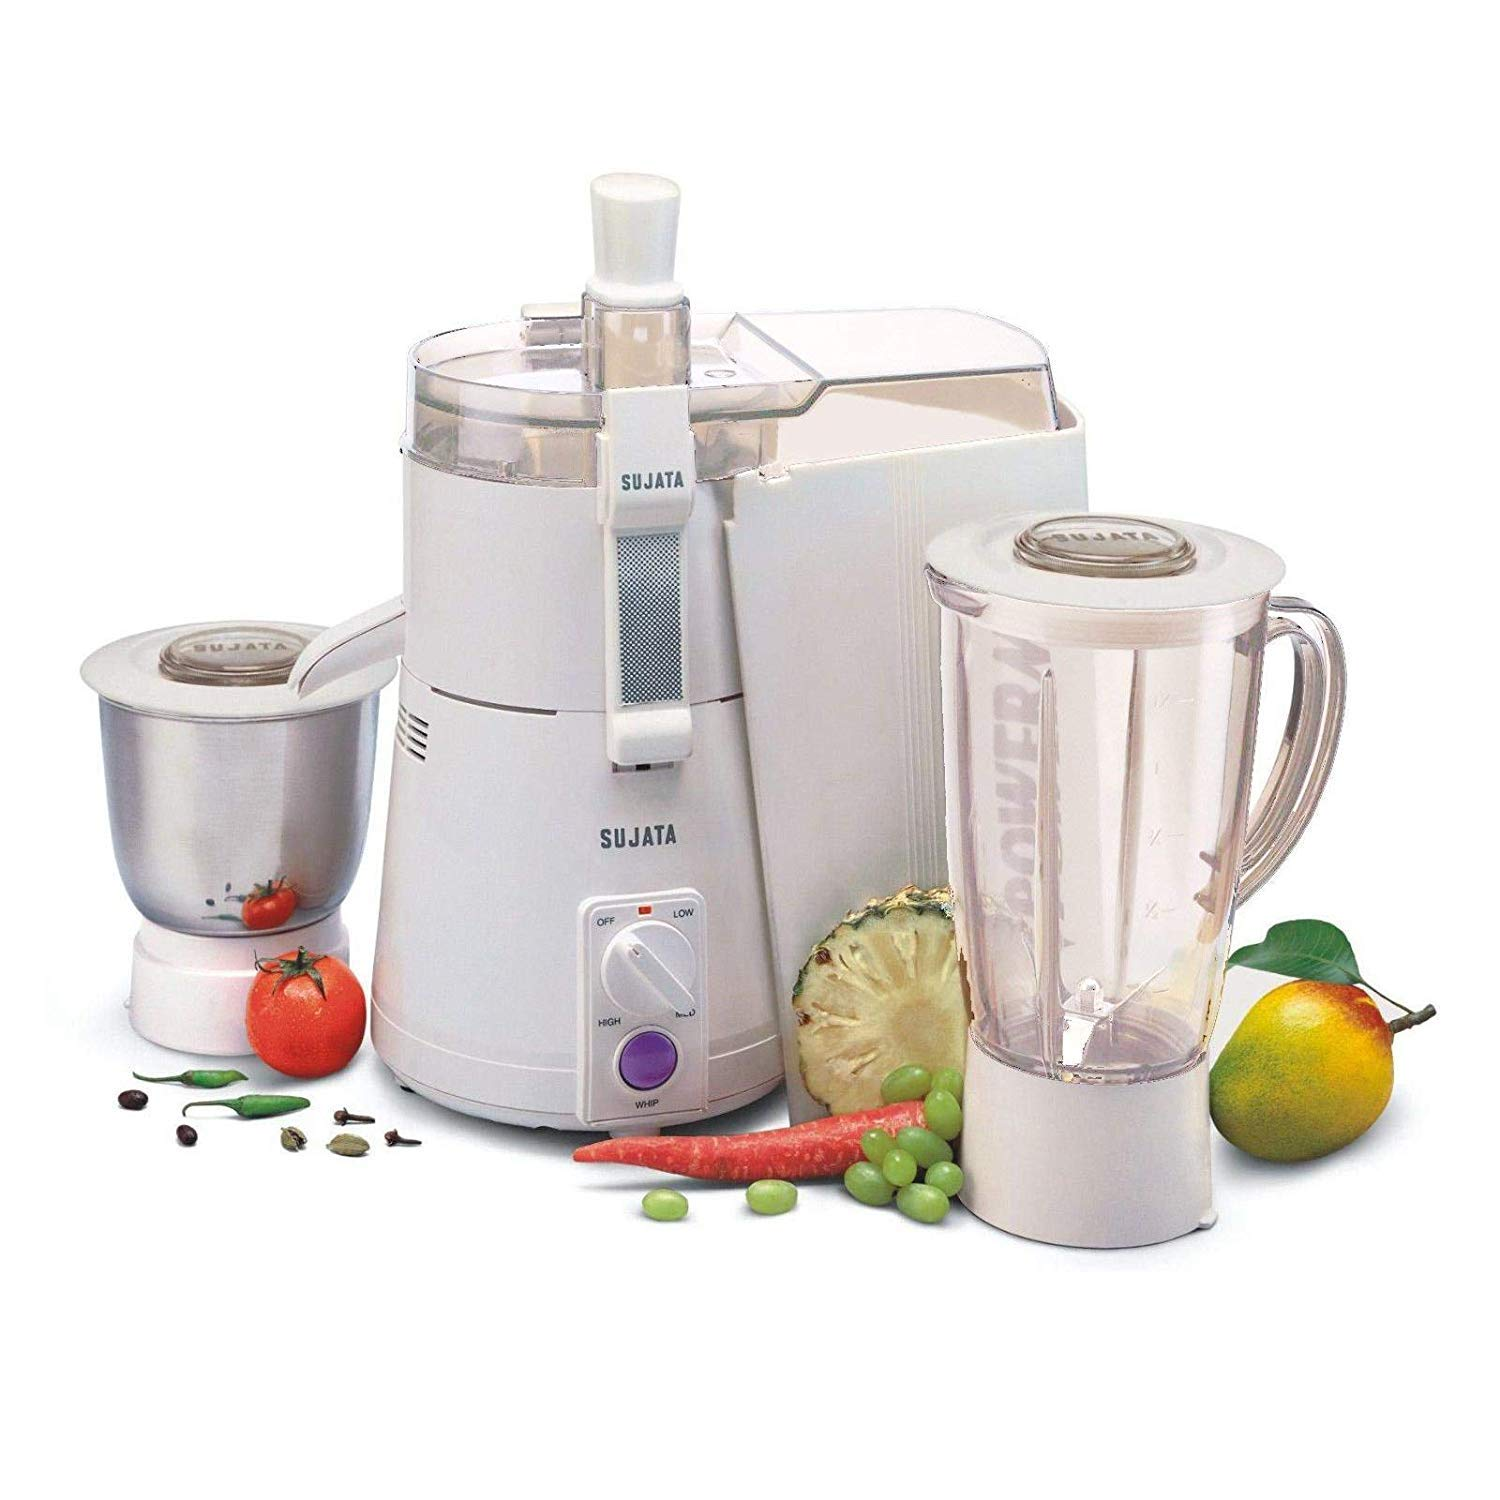 Sujata Powermatic Plus 900 Watts Juicer Mixer Grinder